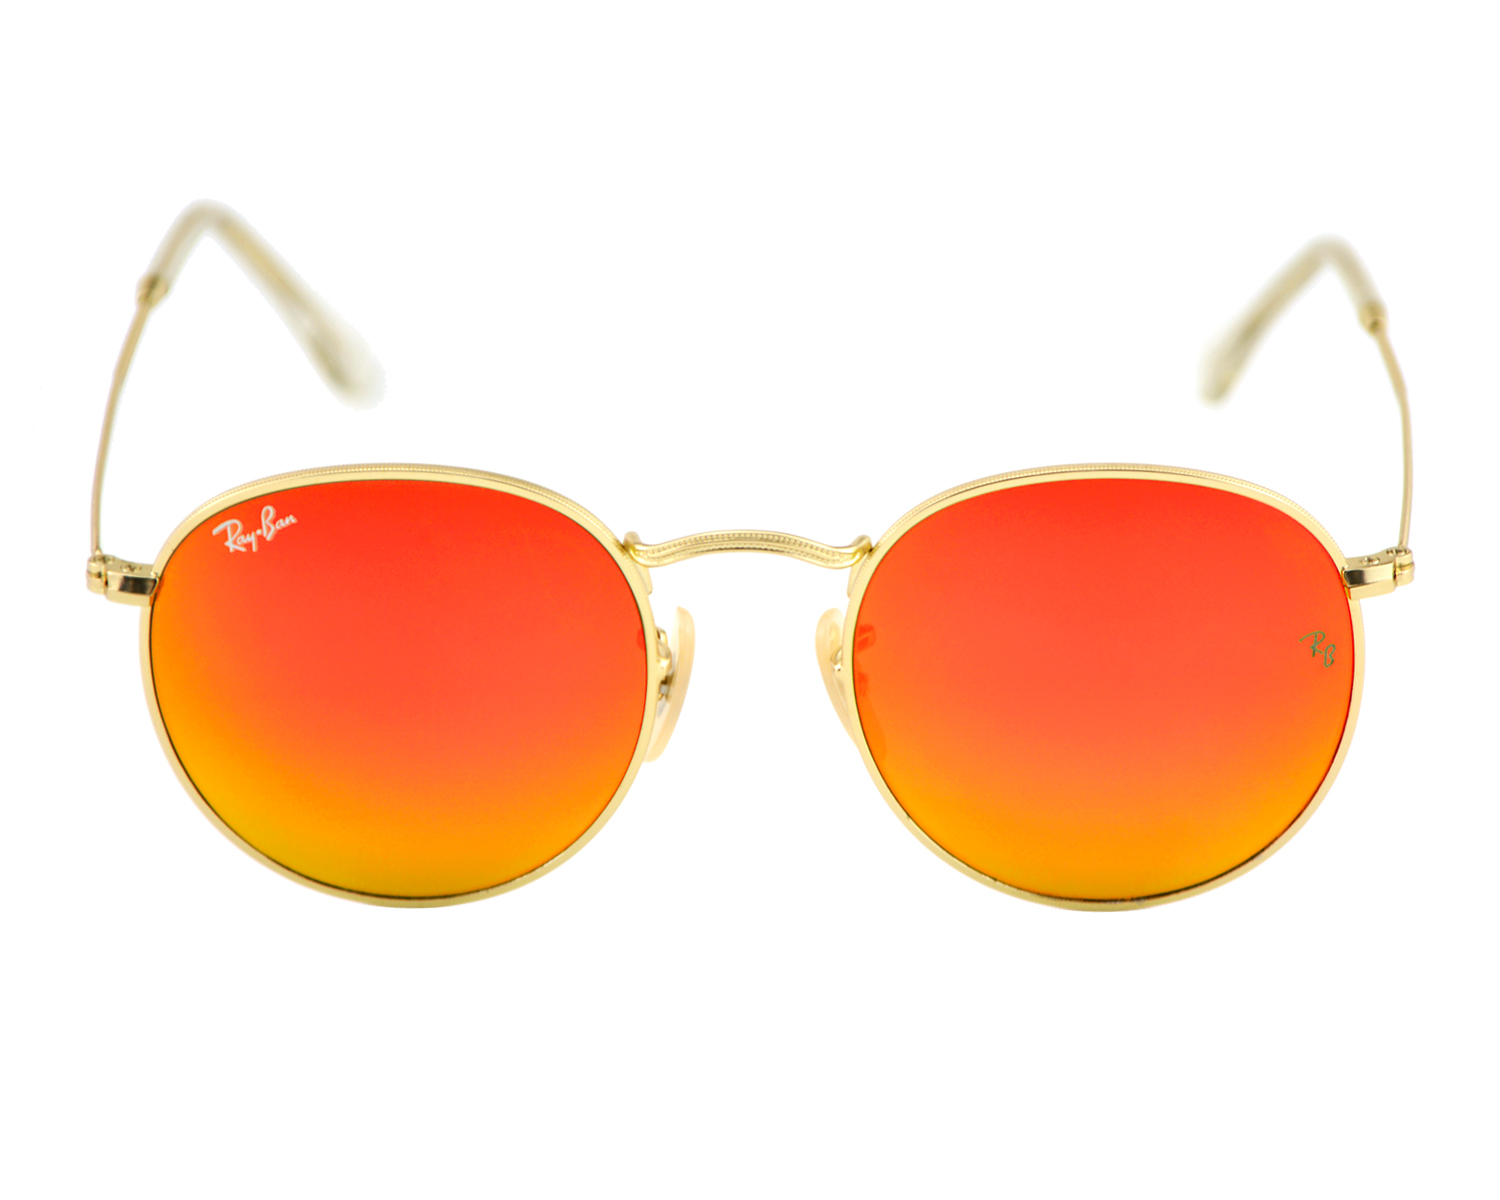 78277a4a8ae Ray Ban RB3447 Round Metal 112 69 Gold Frame Orange Flash Lenses Unisex  Sunglasses 50mm